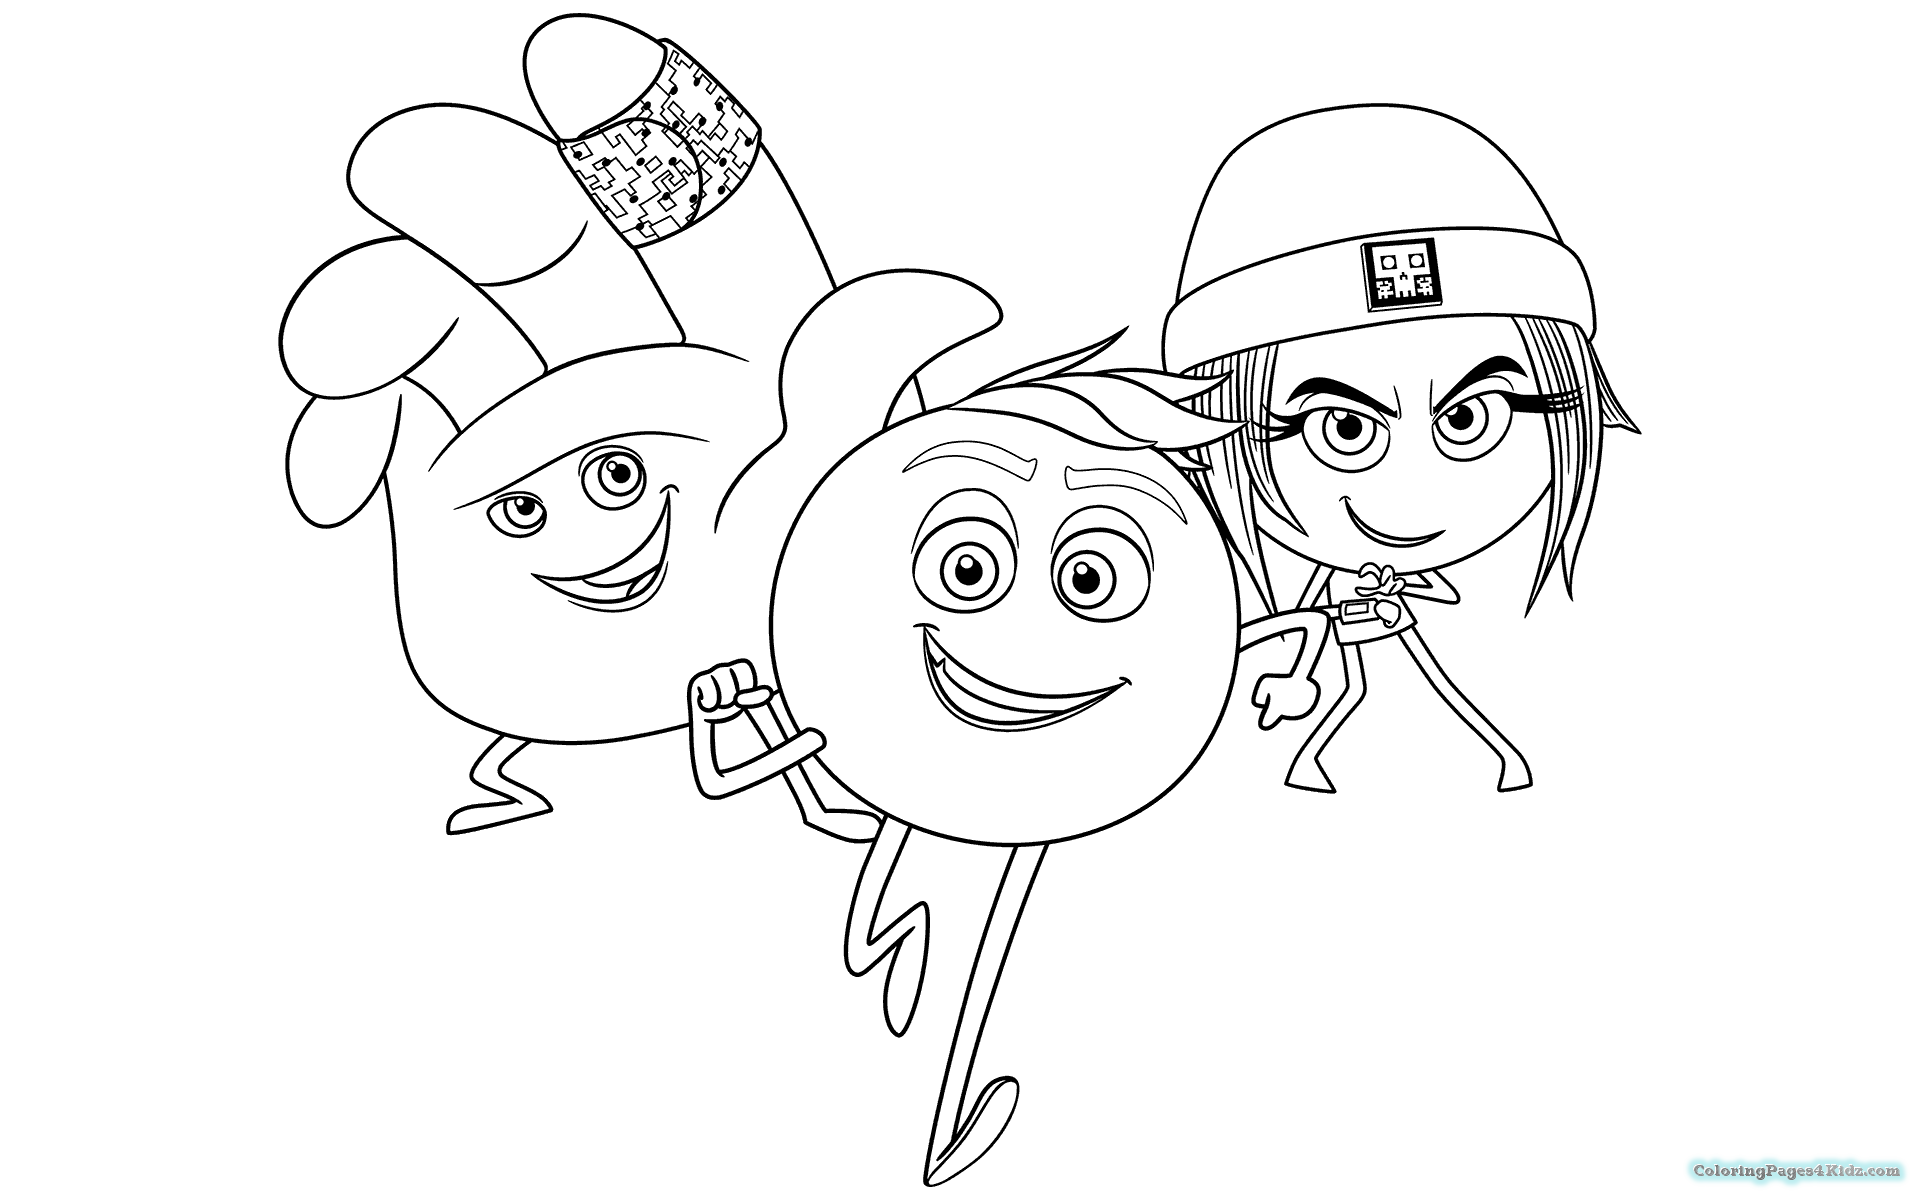 1920x1200 The Emoji Movie Coloring Pages For Kids New